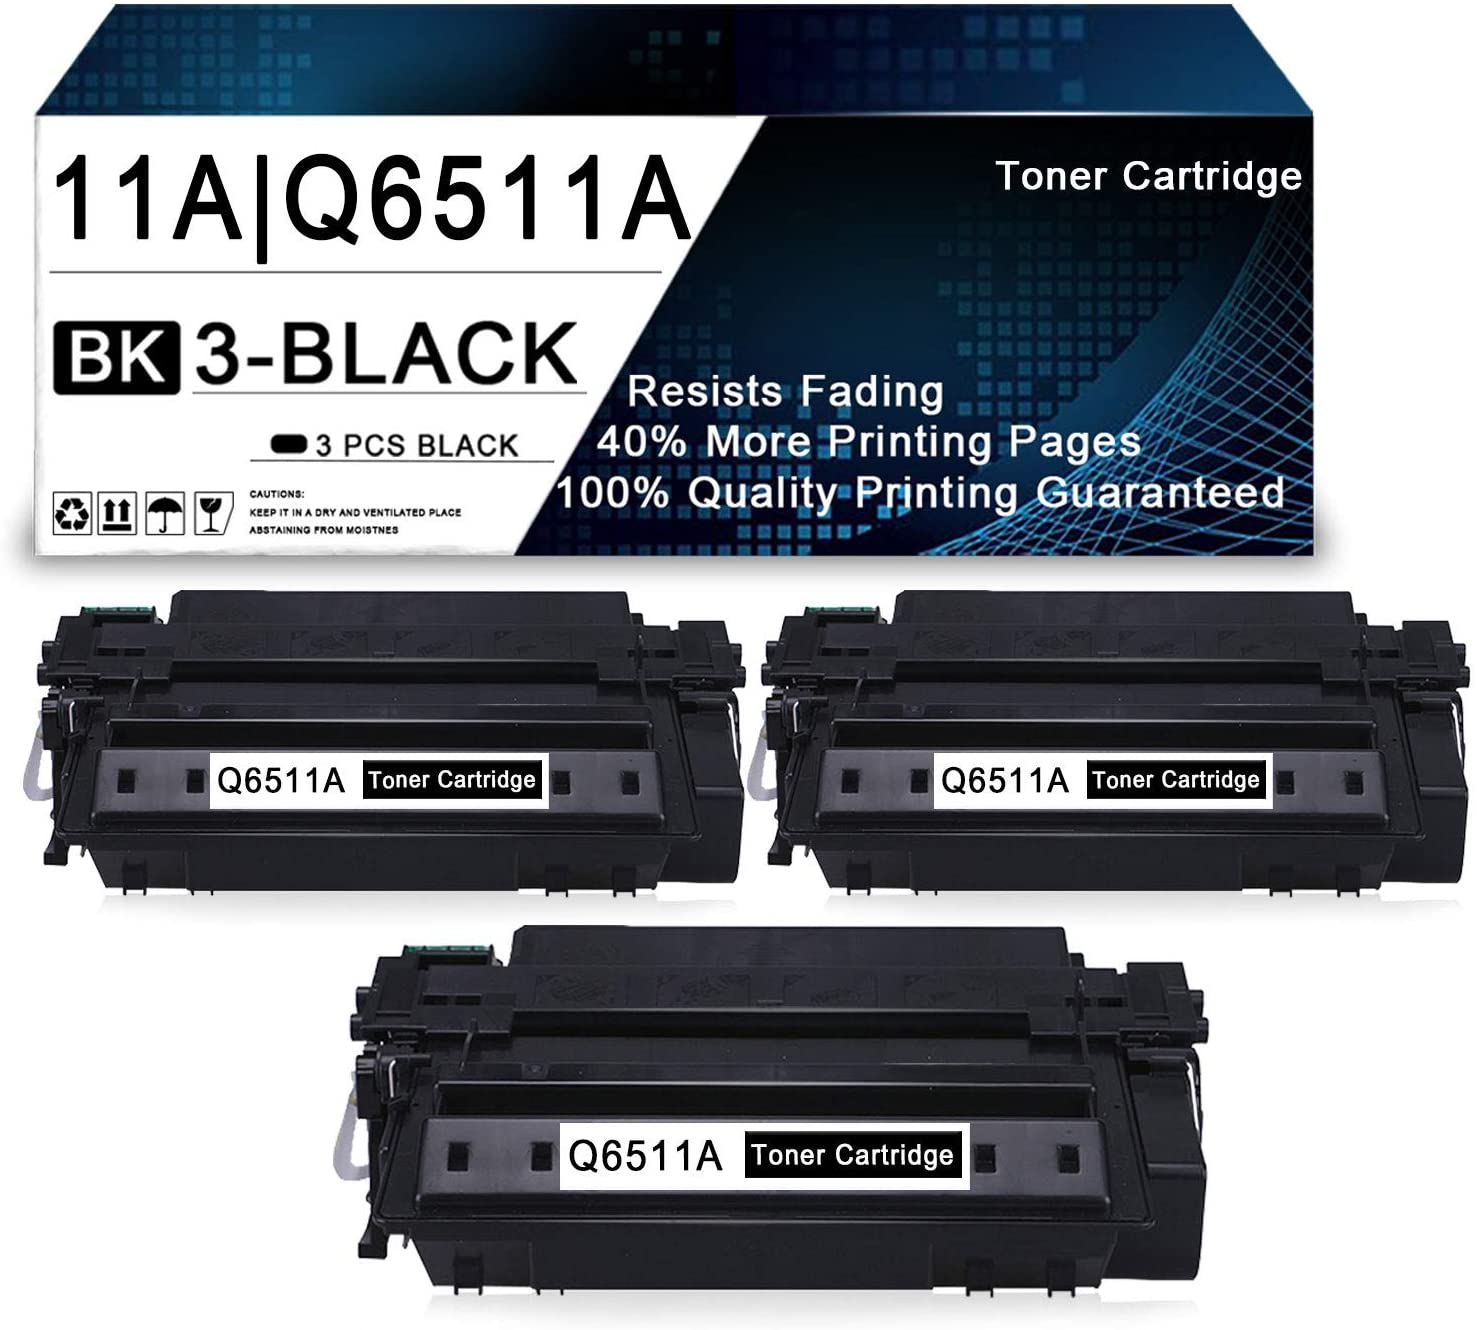 3 Pack Black 11A | Q6511A Compatible Toner Cartridge Replacement for HP Laserjet 2430 2410 2420 2420d 2420n 2420dn 2430tn 2430dtn 2430n Printers.